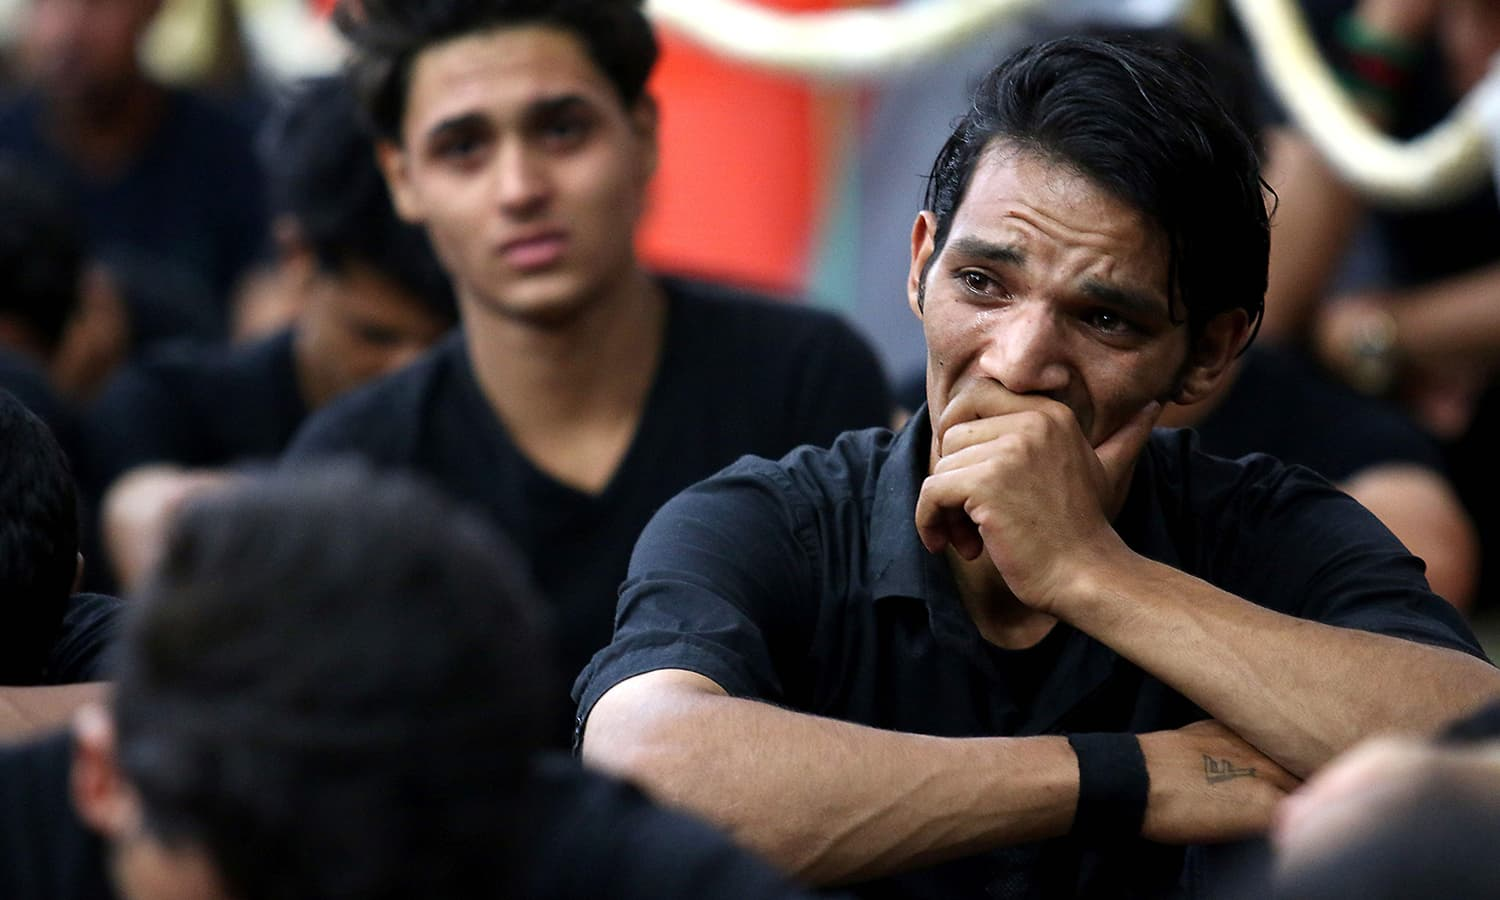 Iraqi men take part in commemorations marking the mourning period of Ashura in the southern city of Basra. ─ AFP